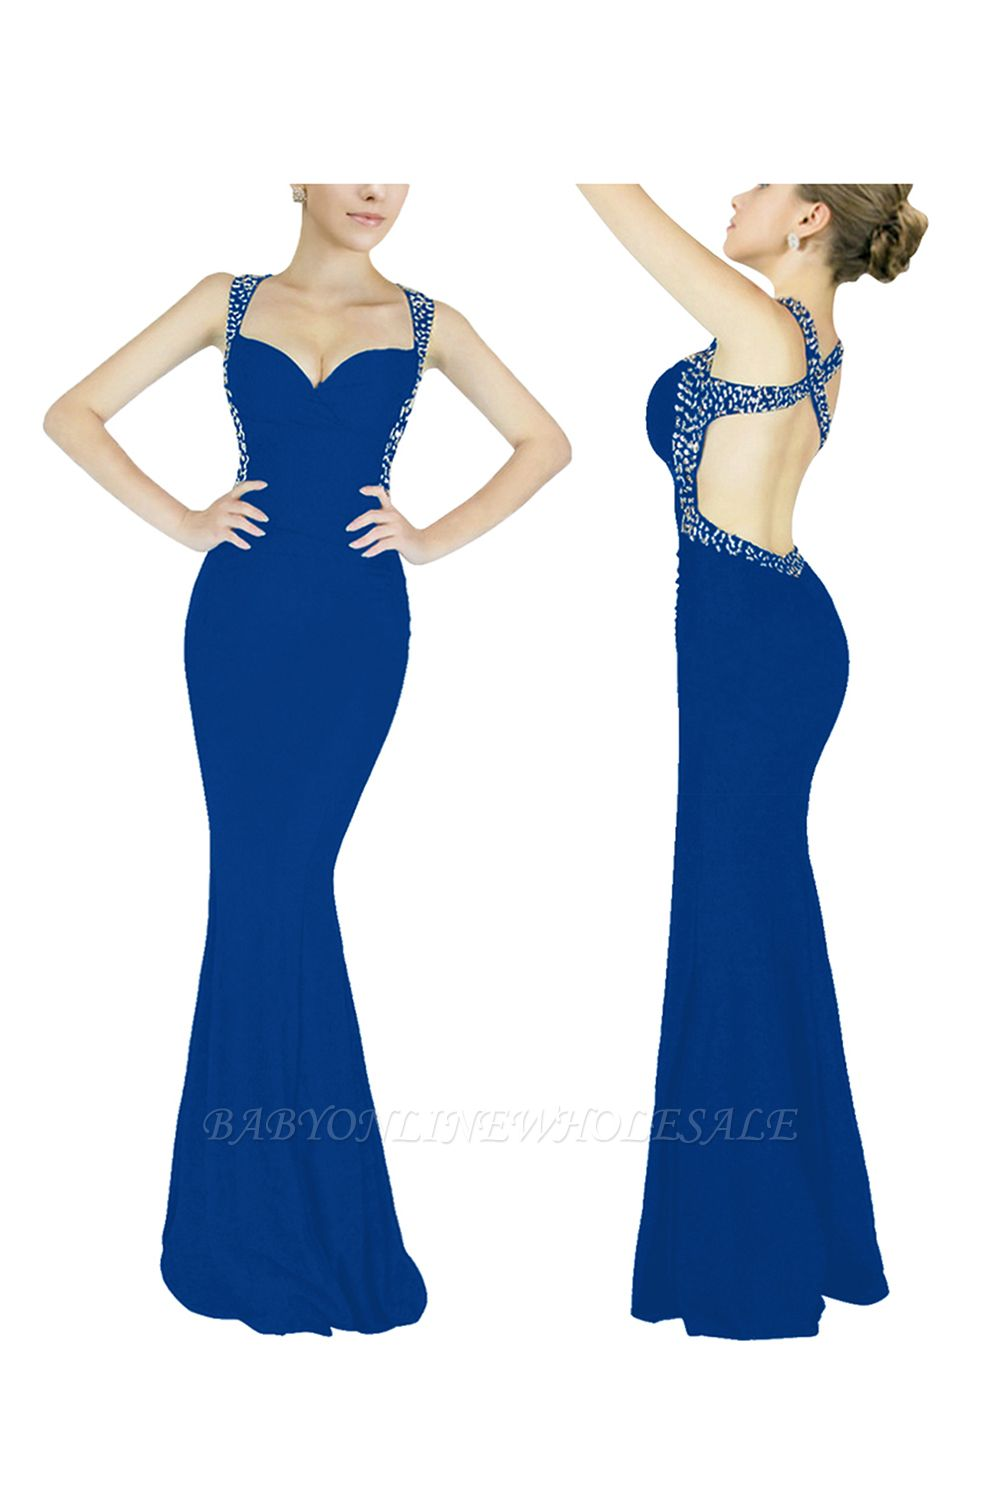 Ceci | Criss-cross Back Mermaid Prom Dress with Beaded Straps